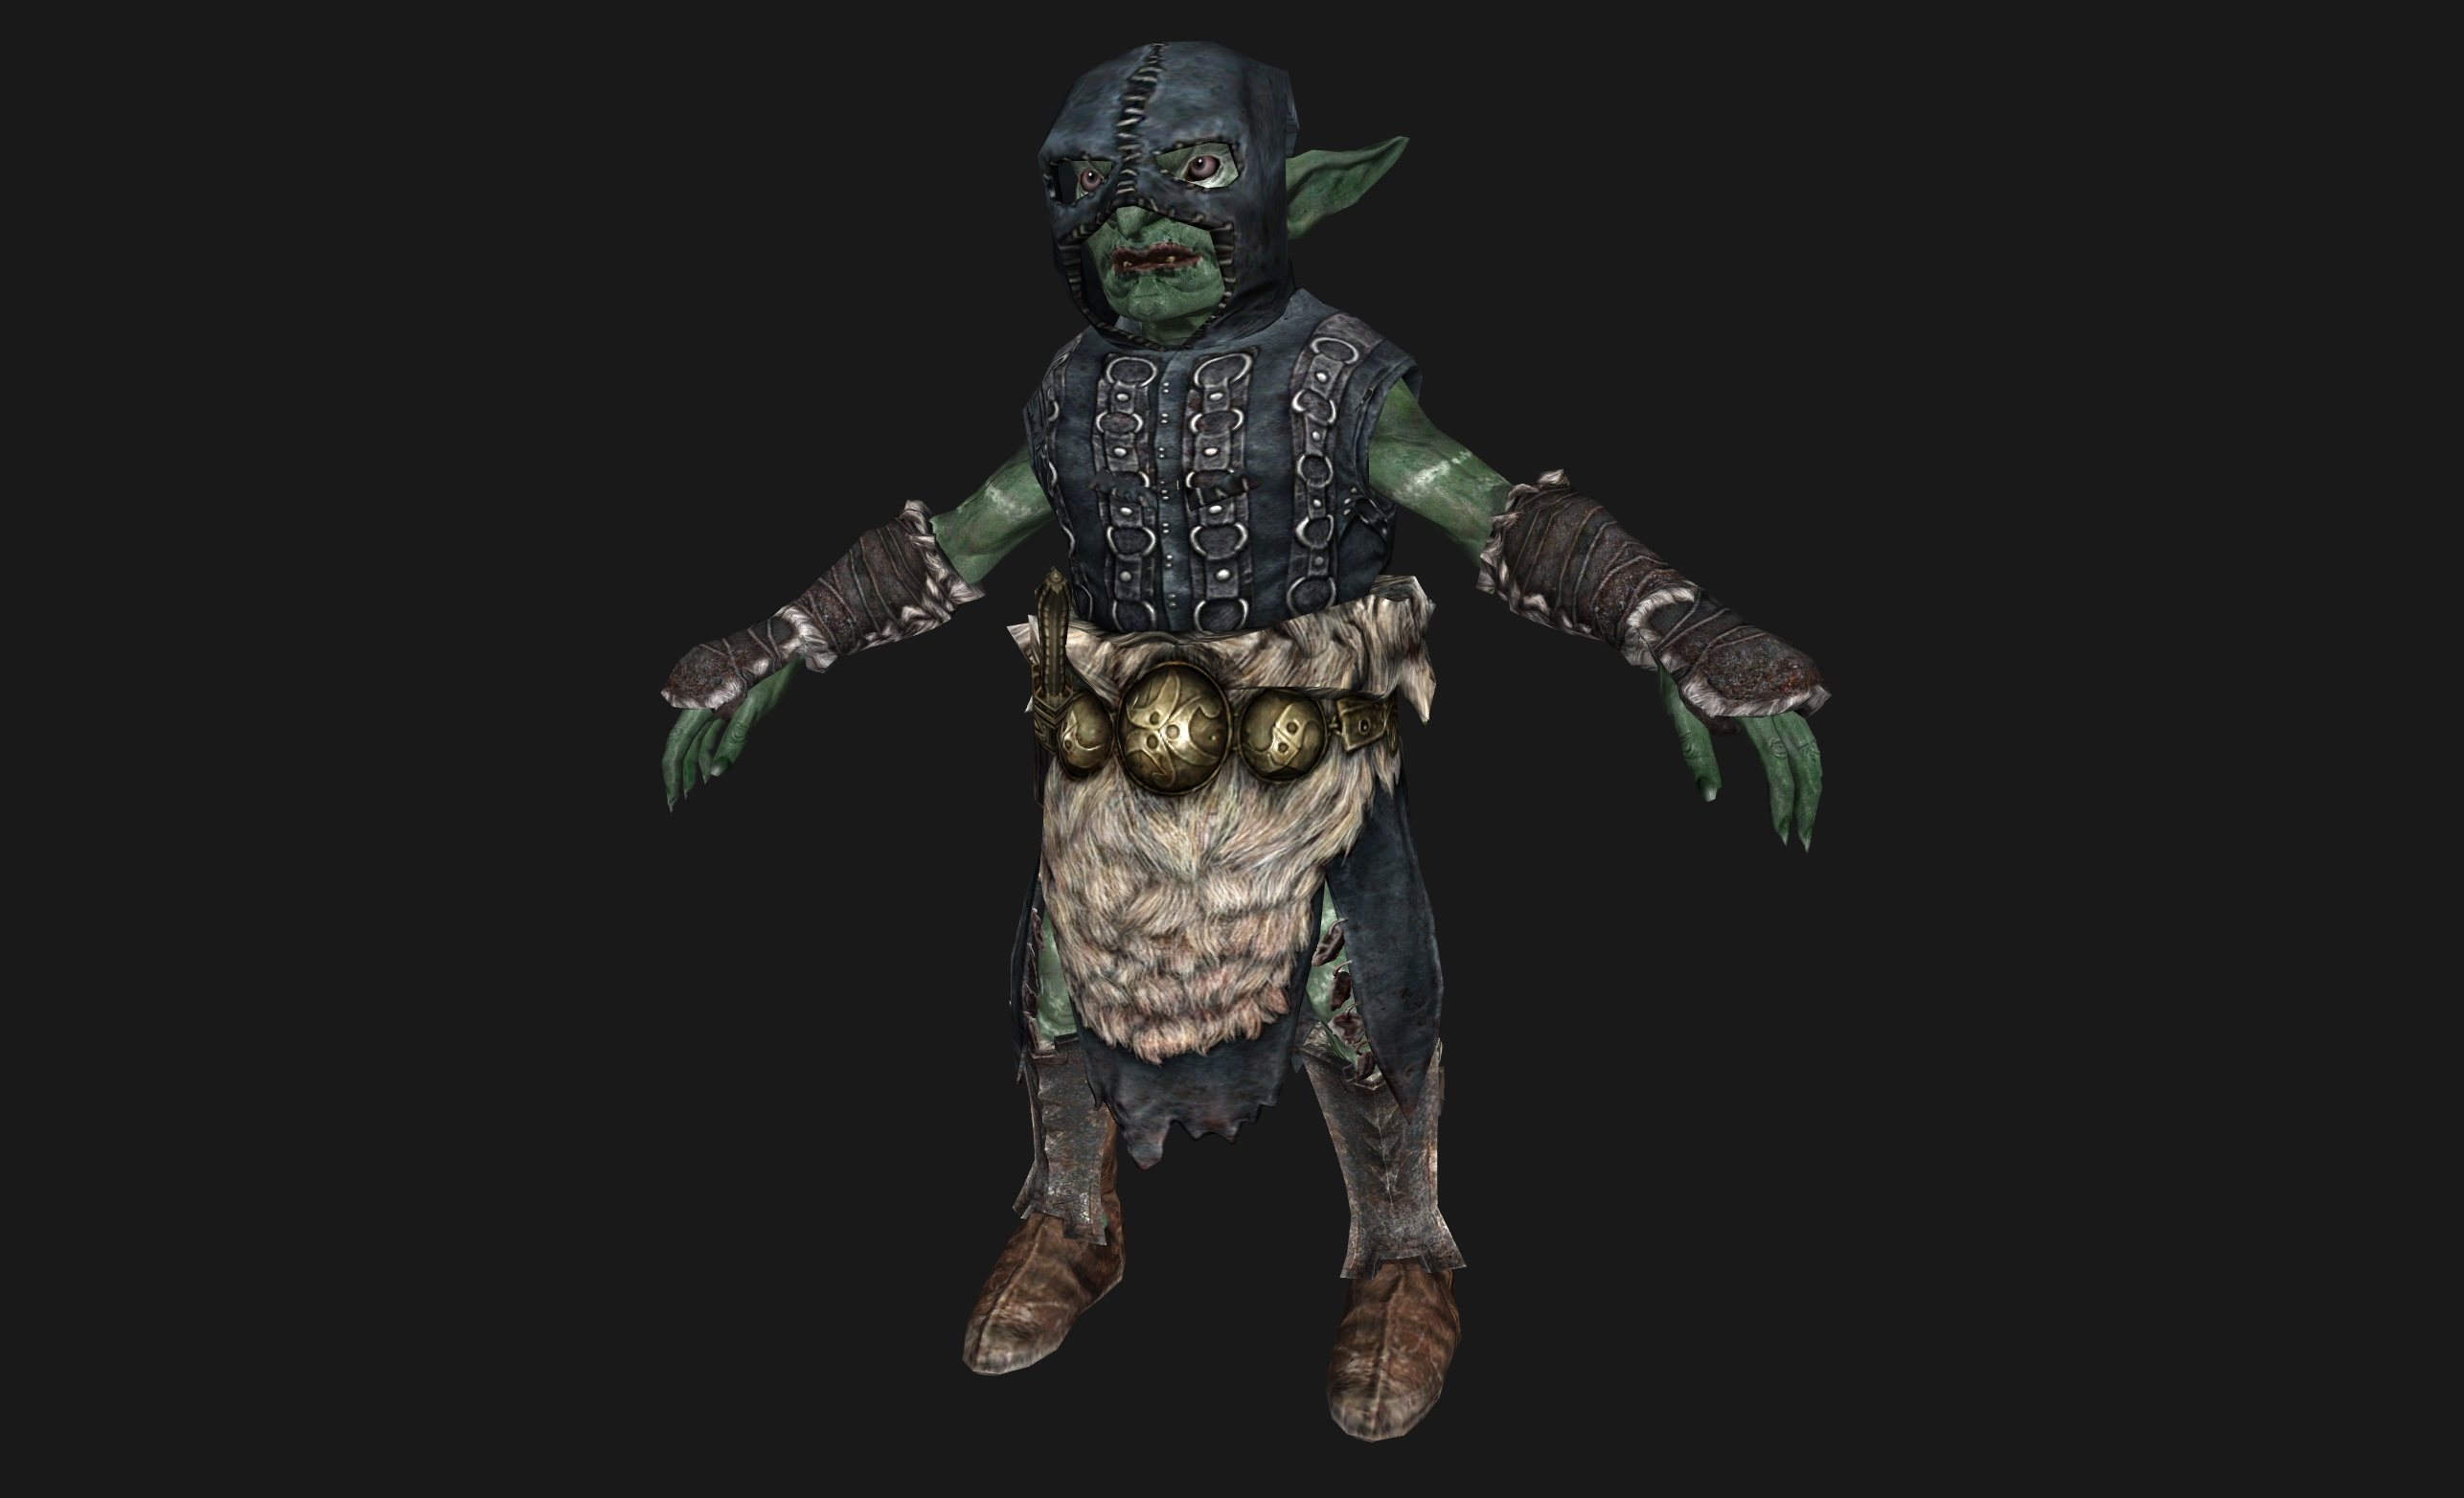 HPGoblinM04 20181014 12 18 34